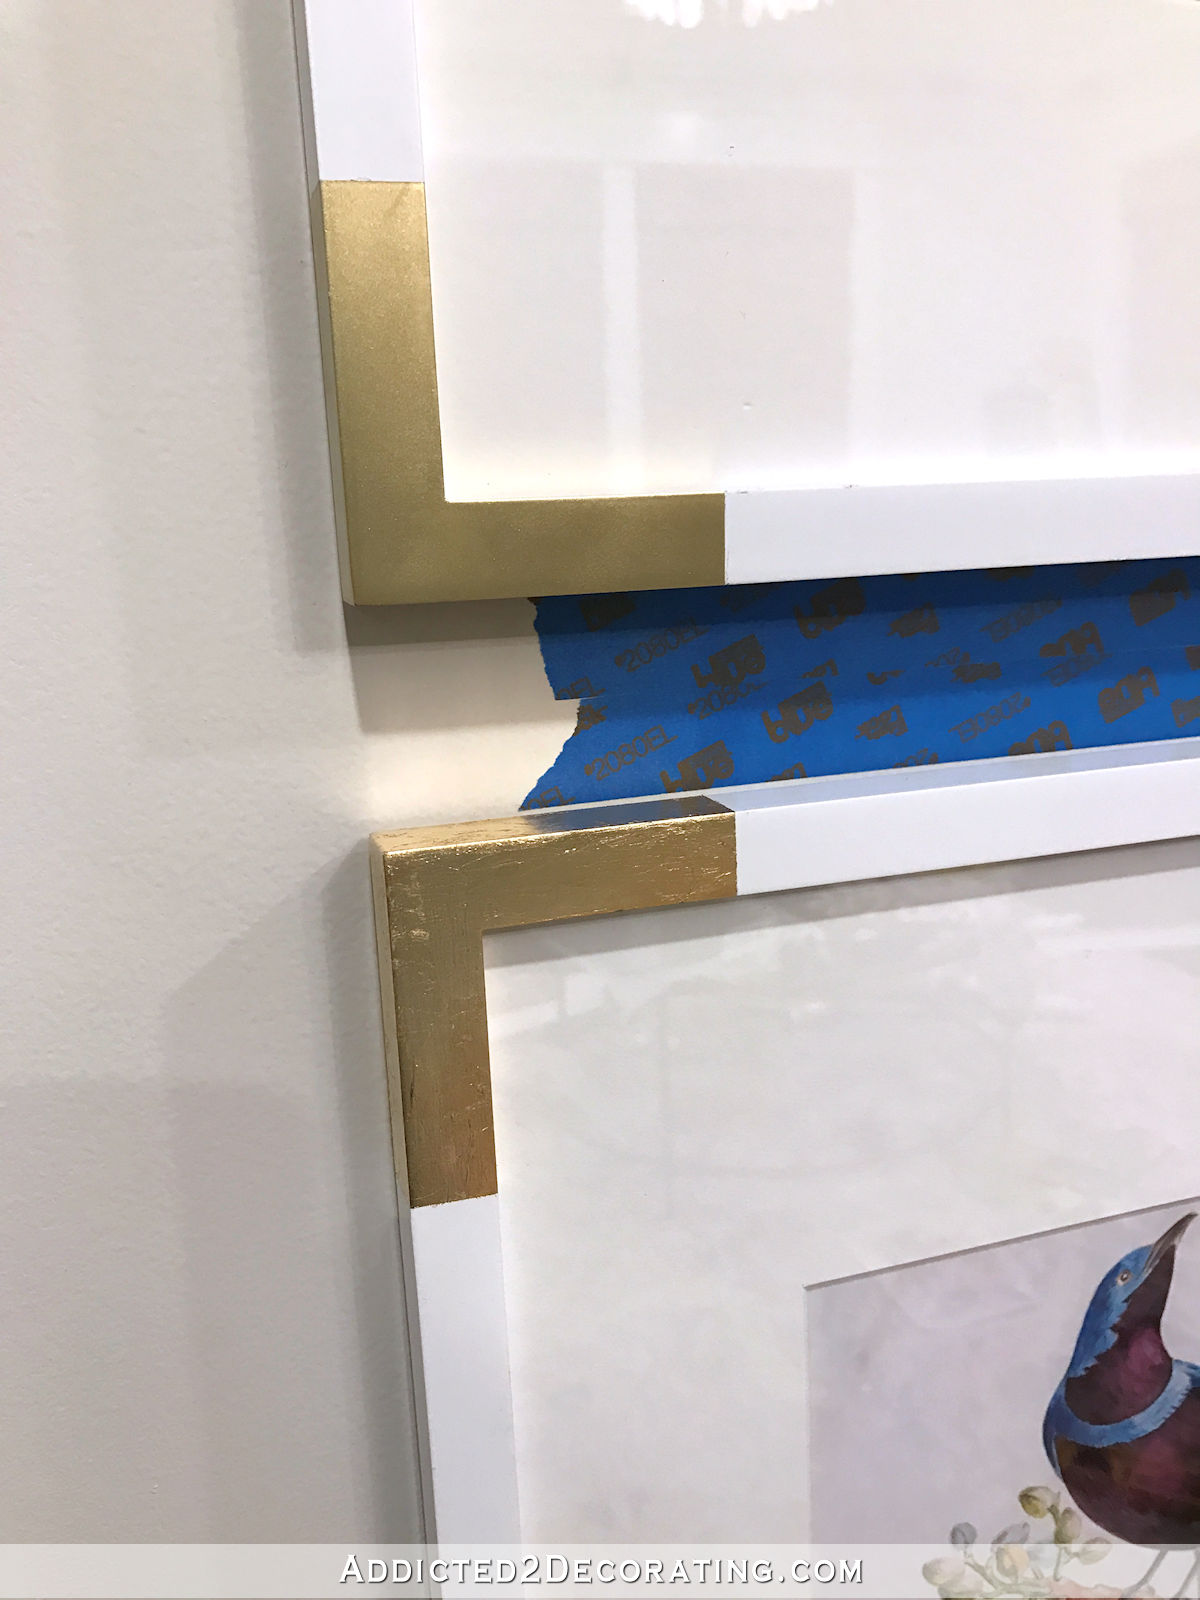 white frames with gold corners - gold spay paint compared to gold leaf